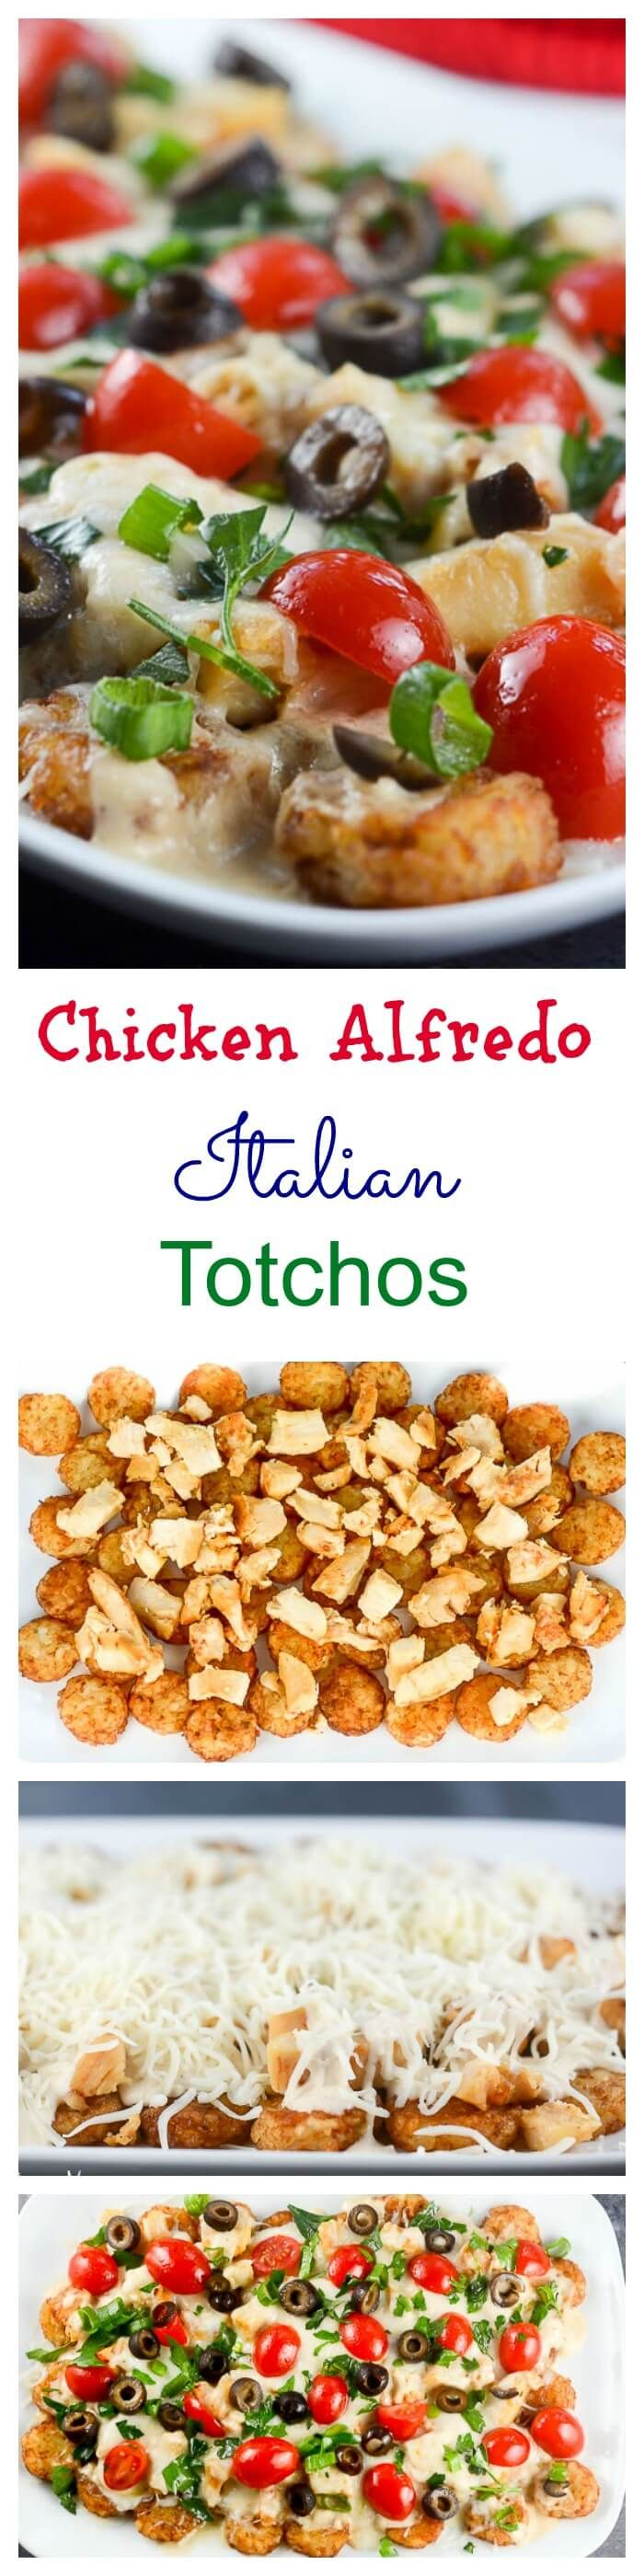 Chicken Alfredo Italian Totchos, inspired by the Italian style nachos at one of our favorite restaurants, use tater tots instead of tortilla or pasta chips to make a quick and easy, kid-friendly weeknight meal. #PregoSauce #ad